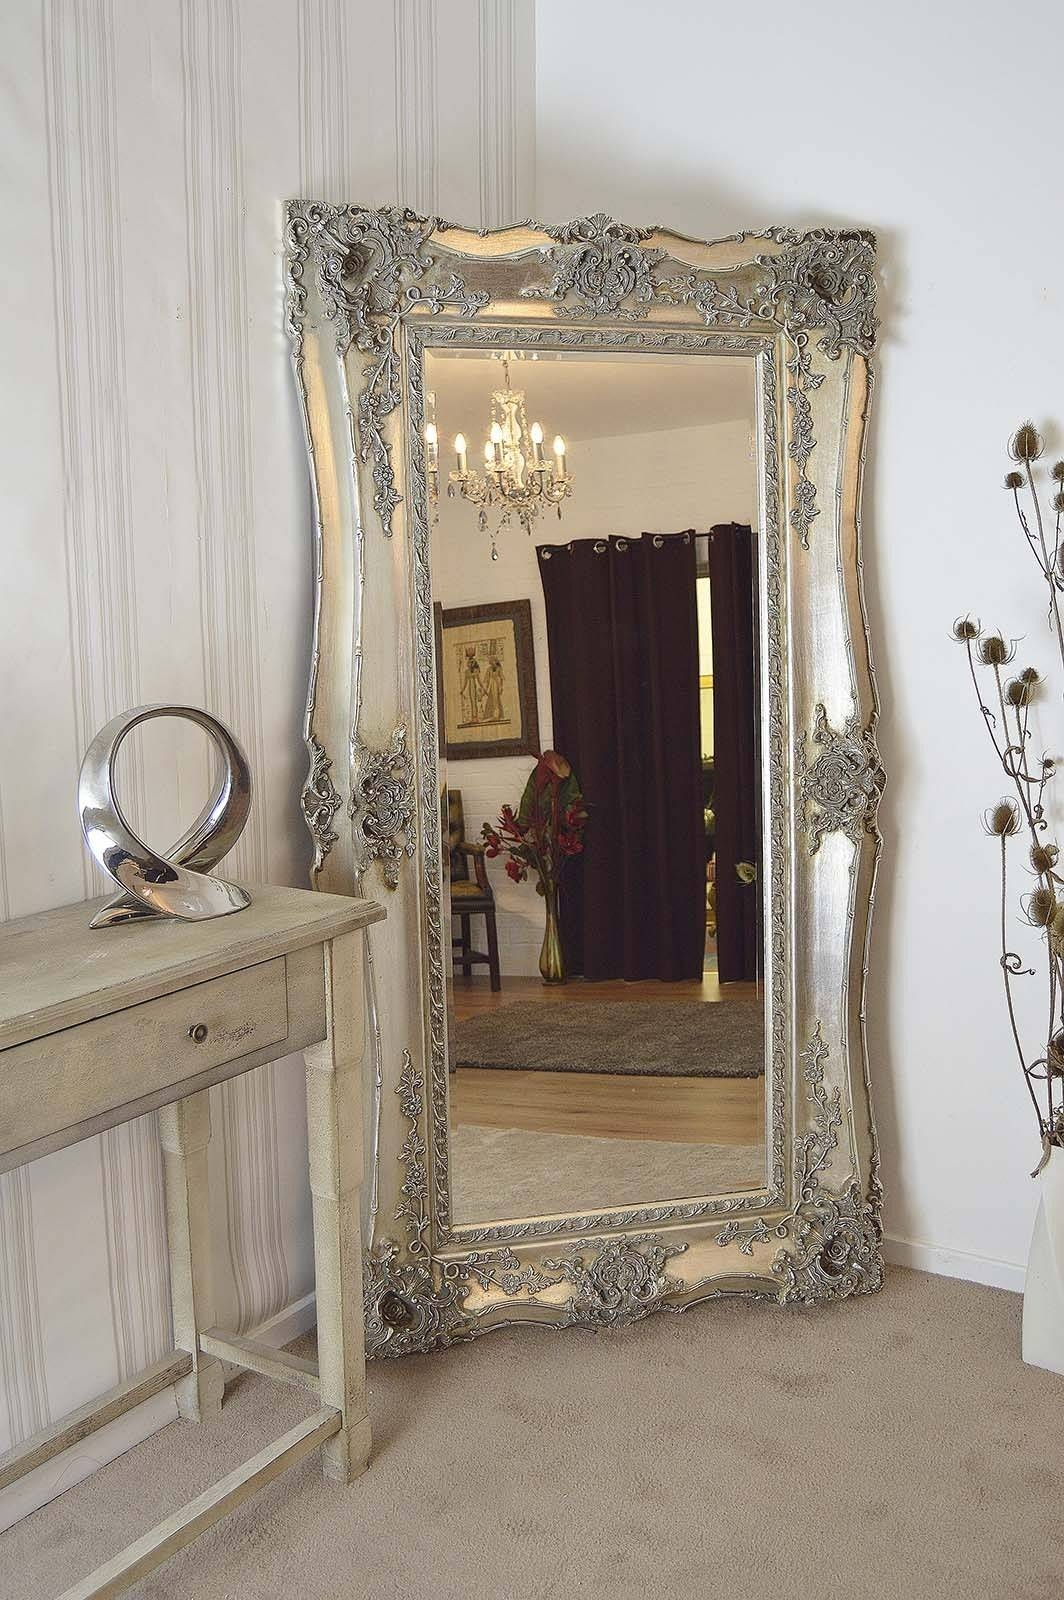 Classic Impression On Antique Wall Mirrors | Vwho pertaining to Silver Antique Mirrors (Image 10 of 25)